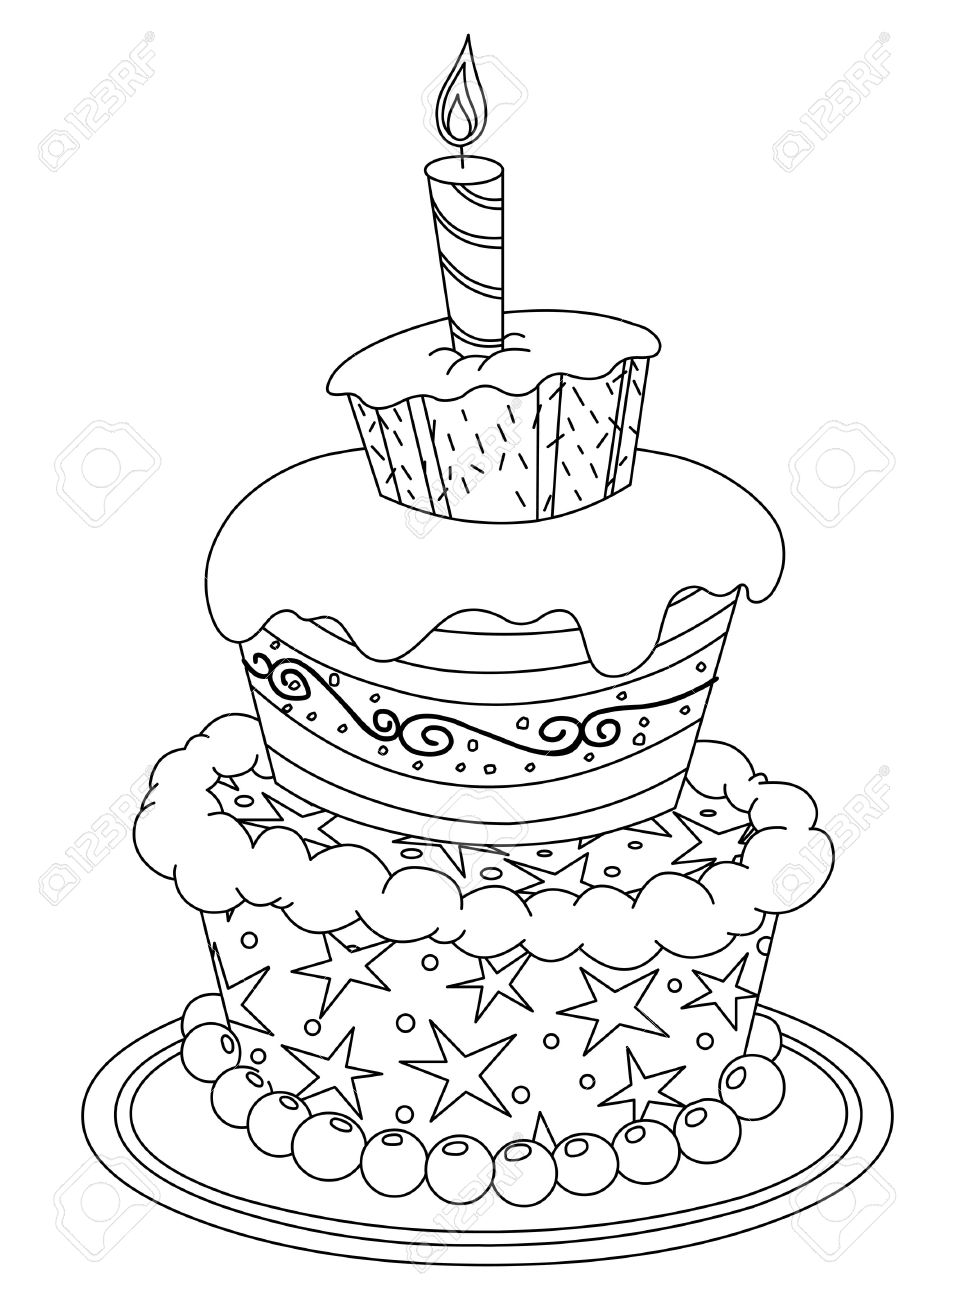 Outlined Birthday Cake Vector Illustration Coloring Page Stock